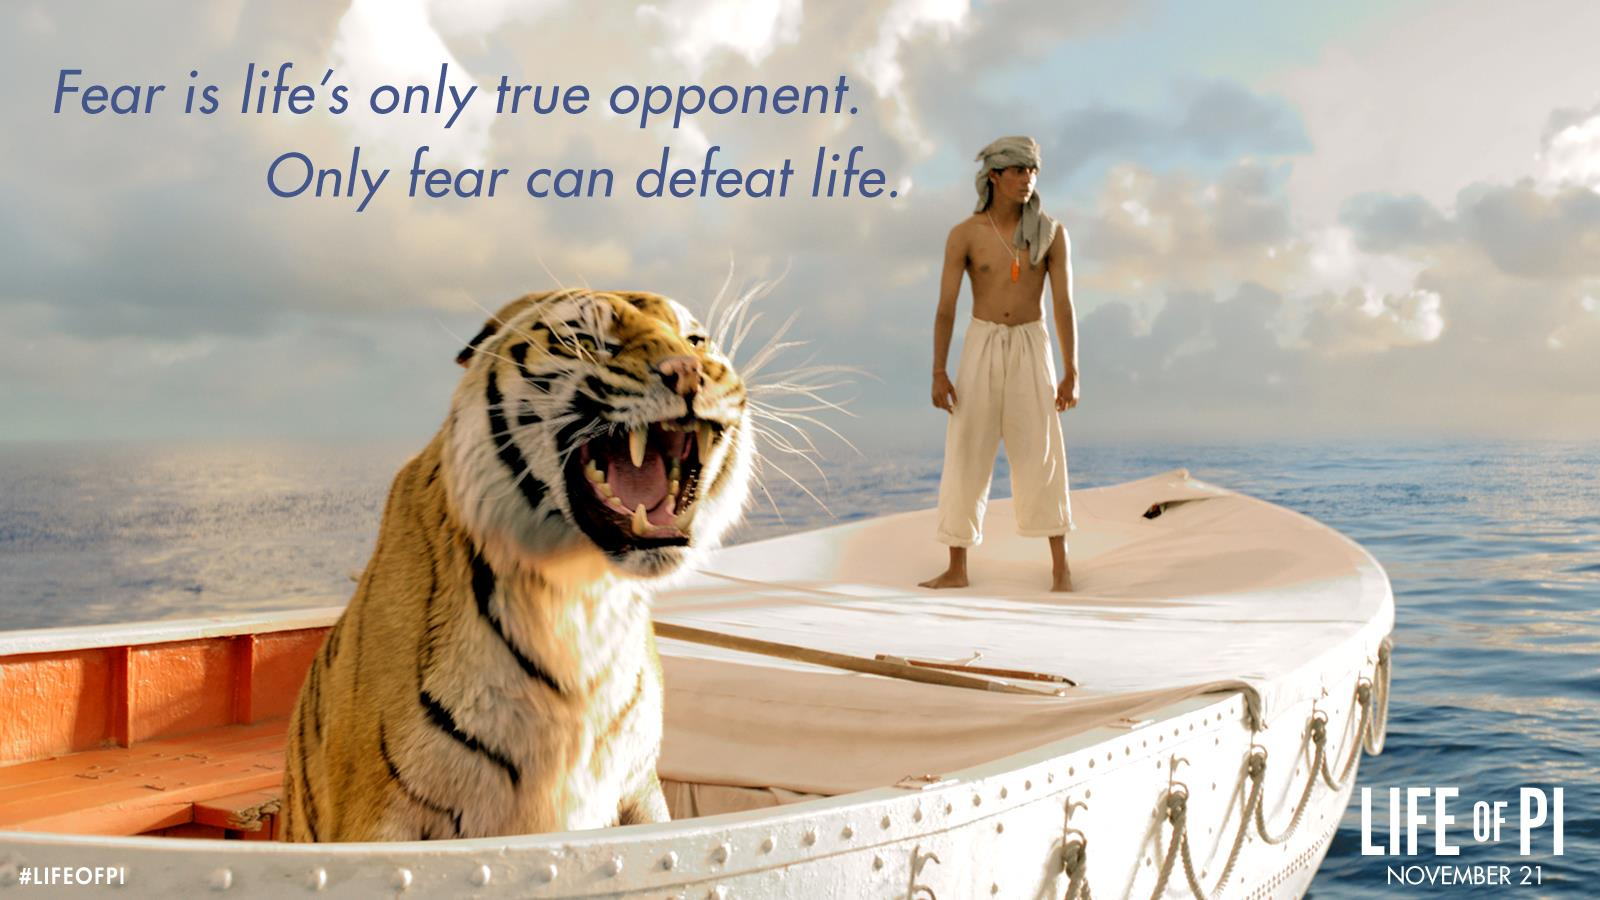 It is life's only true opponent. Only fear can defeat life 生命中,只有恐懼是你的對手。只有恐懼可以打倒你